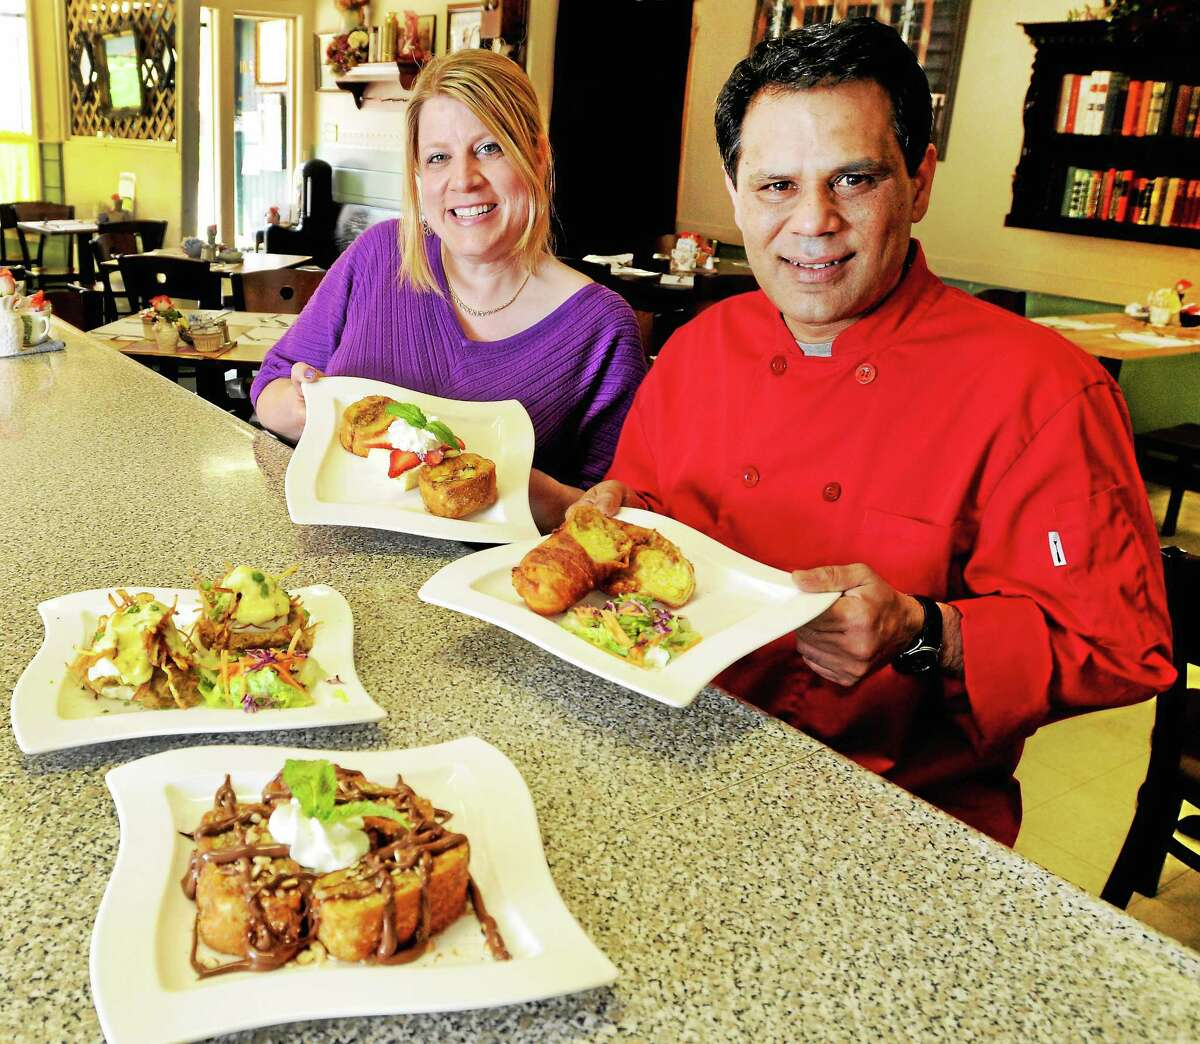 """Michelle and Amer Lebel show off four popular dishes, clockwise from top, right, with Amer holding his South India spiced pulled duck wrapped in a bacon layered tortilla with scrambled eggs and mild cheese; banana-stuffed French toast with Nutella and toasted almond; """"South African Hash"""" of spicy beef and lentil over an English muffin topped with poached eggs, crispy potatoes and Bearnaise sauce; and Michelle holding the """"Trio,"""" an apple cinnamon, raisin, cream cheese stuffed French toast with fresh strawberry and banana with a vanilla cake soaked in sweet cream with strawberries."""